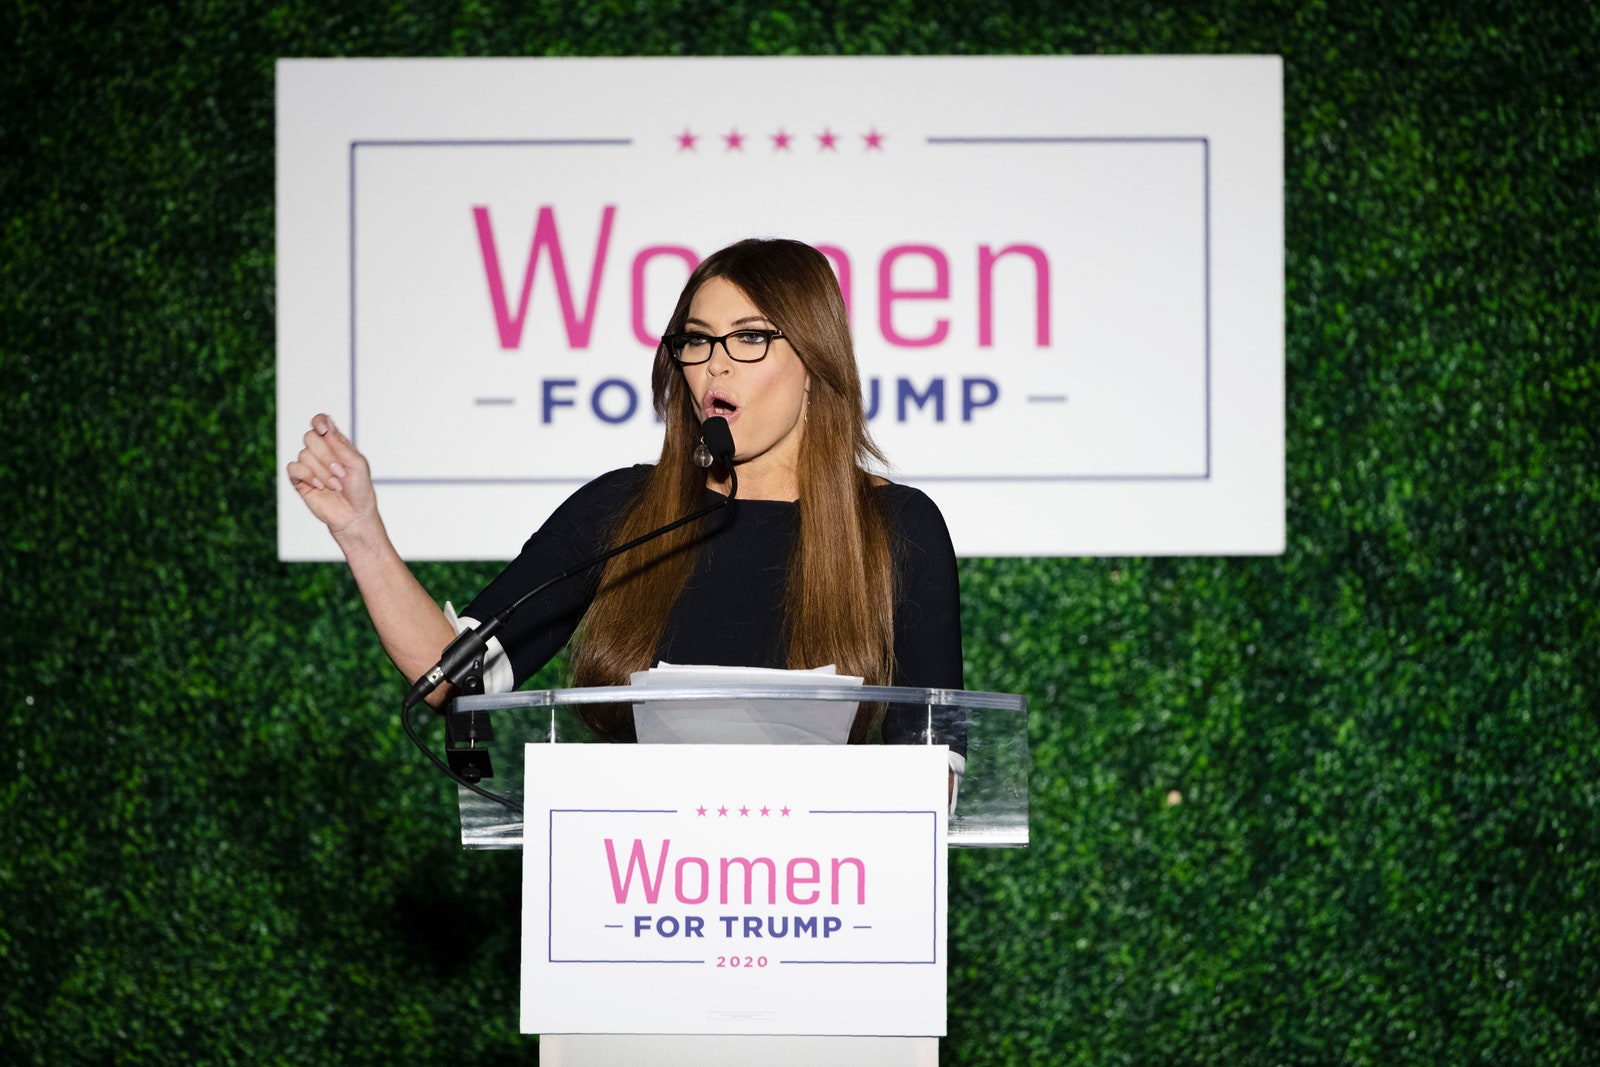 Kimberly Guilfoyle speaks in front of a Women For Trump sign.